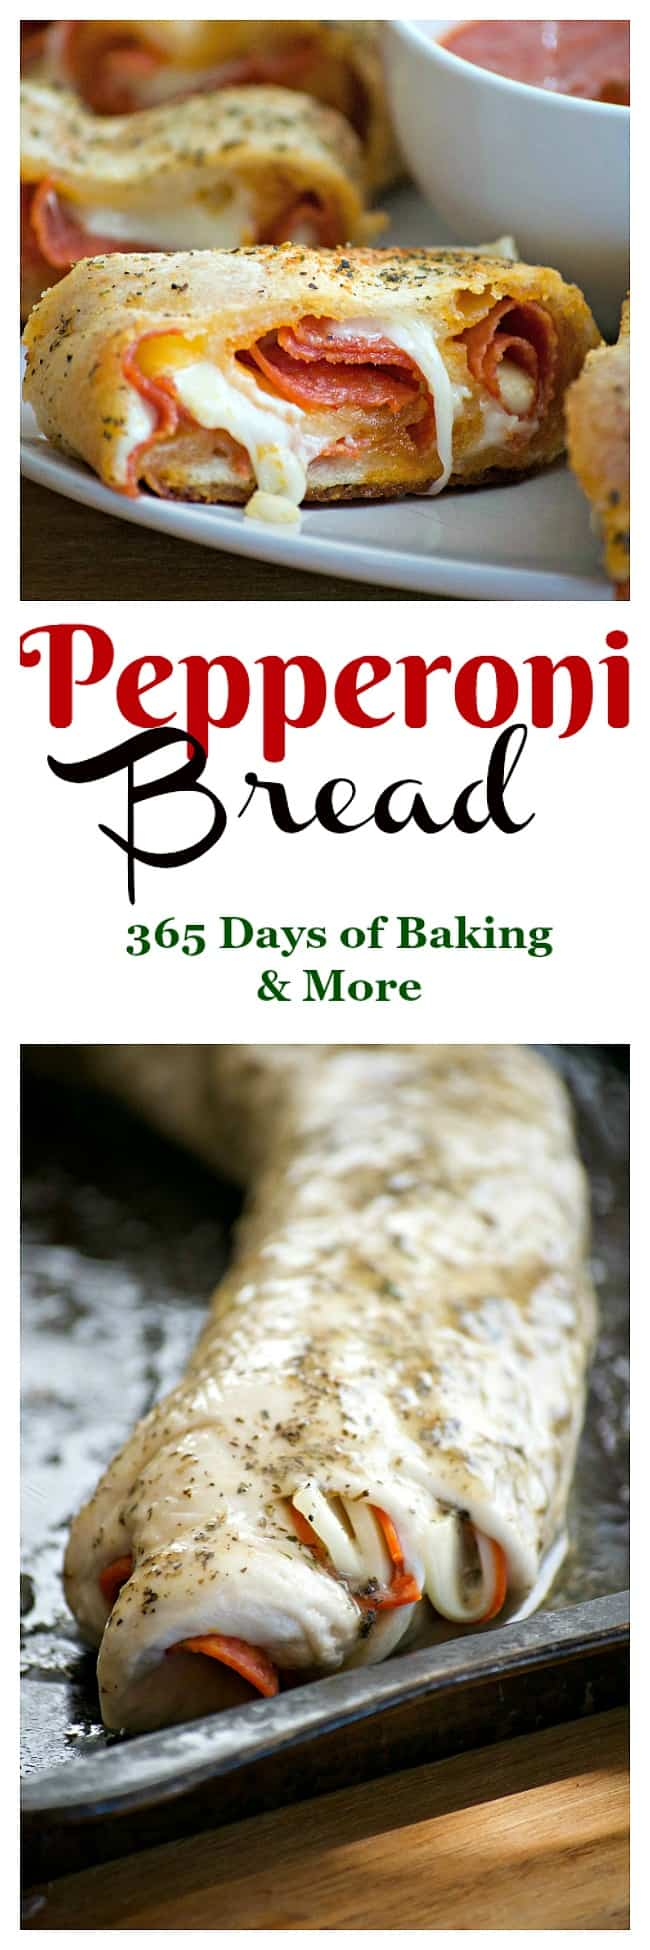 Pepperoni Bread - 365 Days of Baking and More